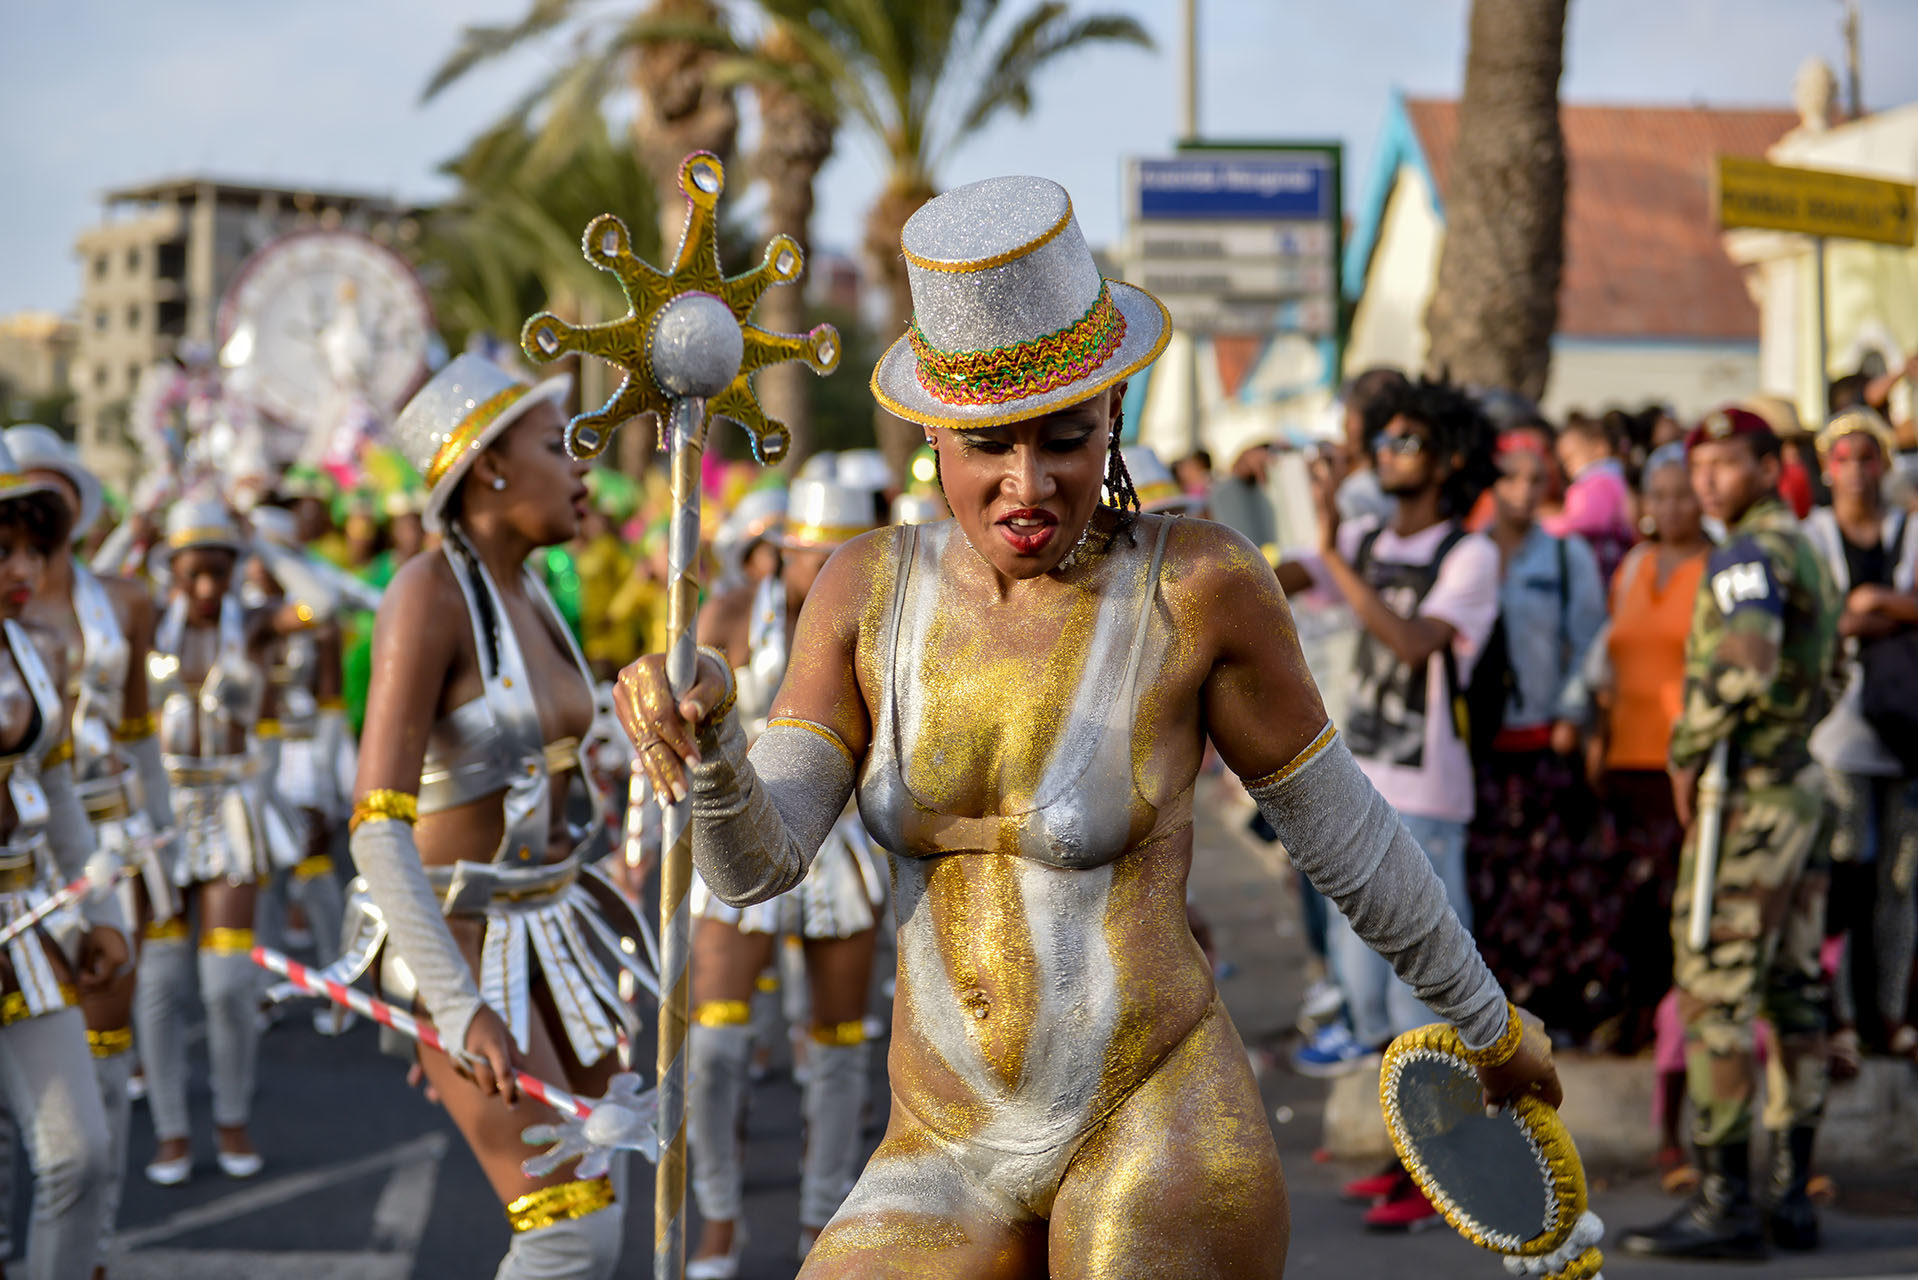 photographe-travel-style-and-life-maya-angelsen-evenementiel-ile-de-france-paris-carnaval-mindelo-cap-vert